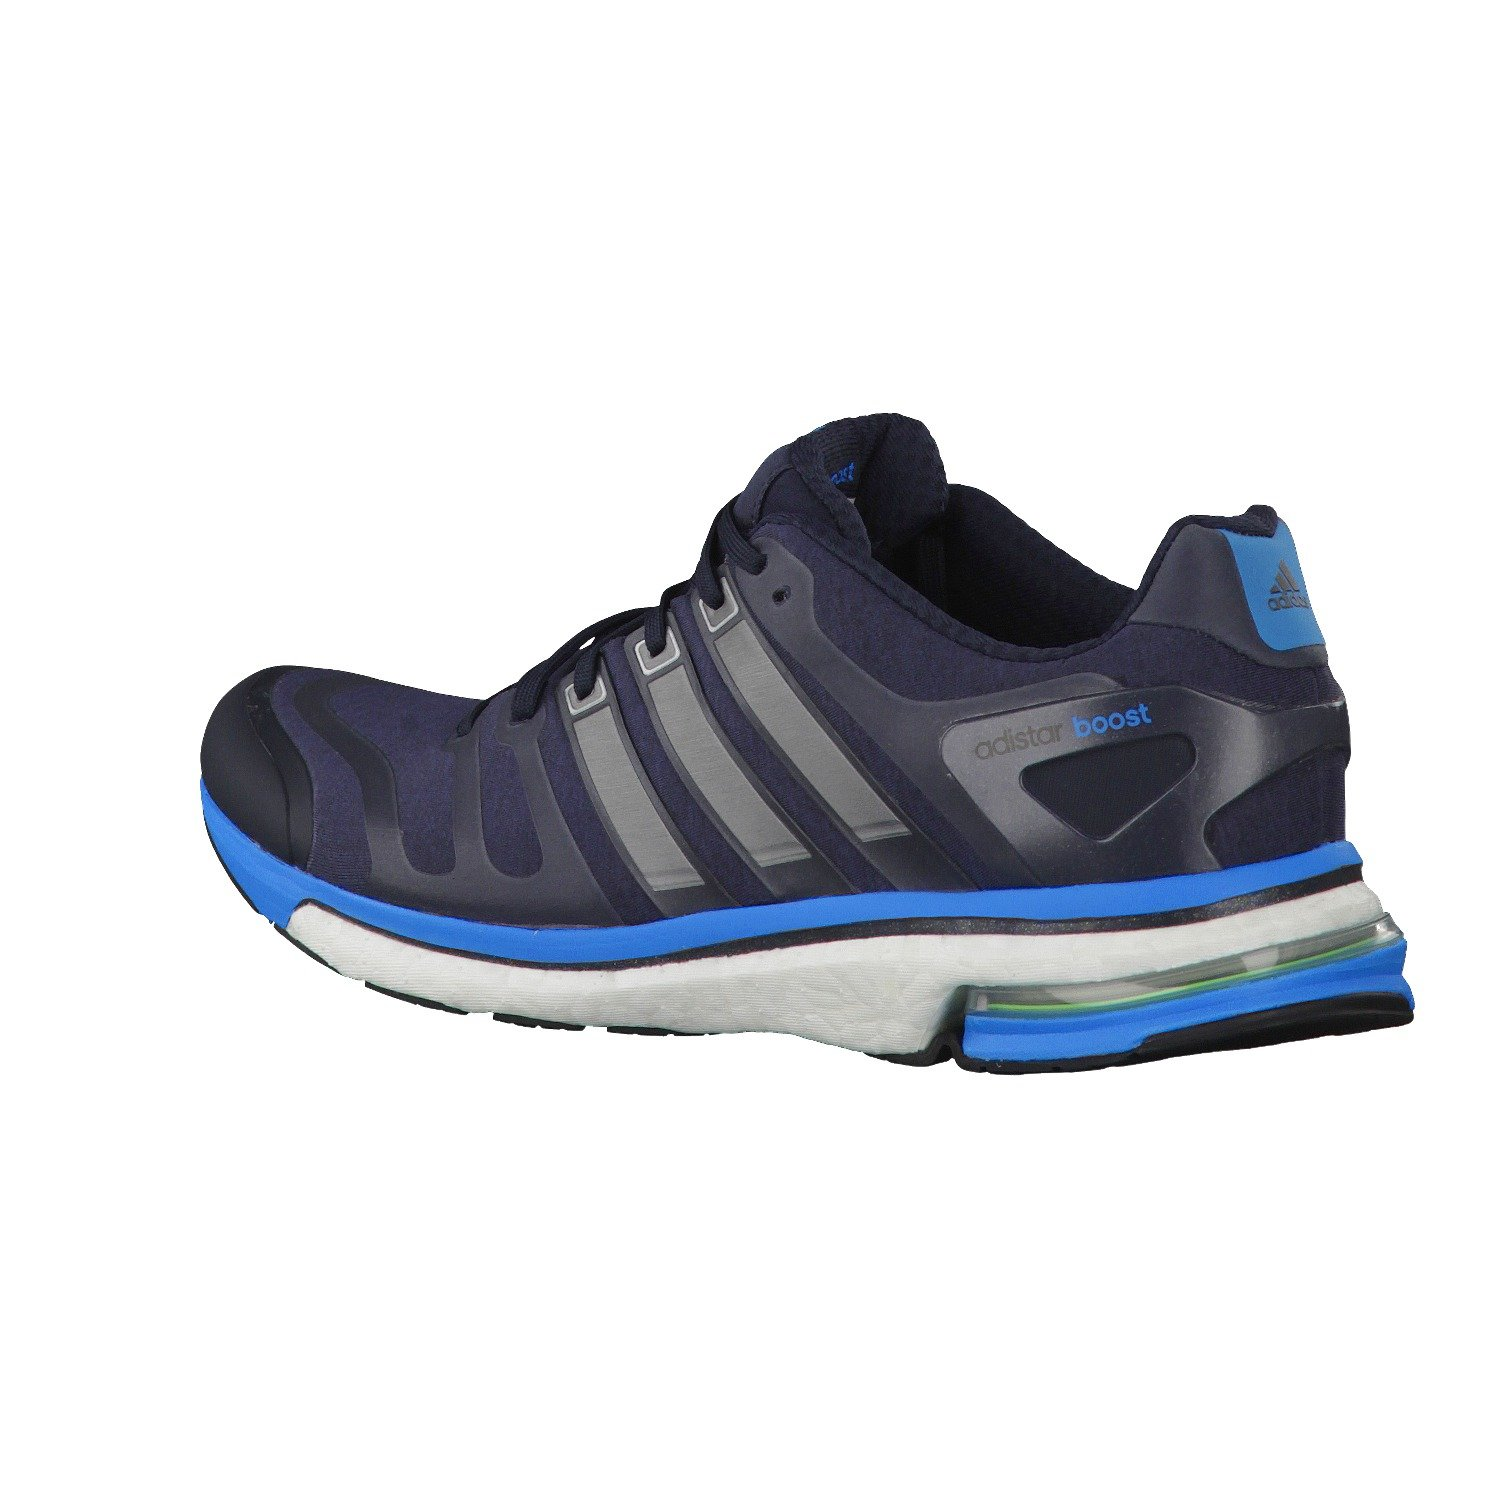 promo code 49f02 bda17 adidas Adistar Boost Running Shoes - 14.5 Black Amazon.co.uk Shoes  Bags